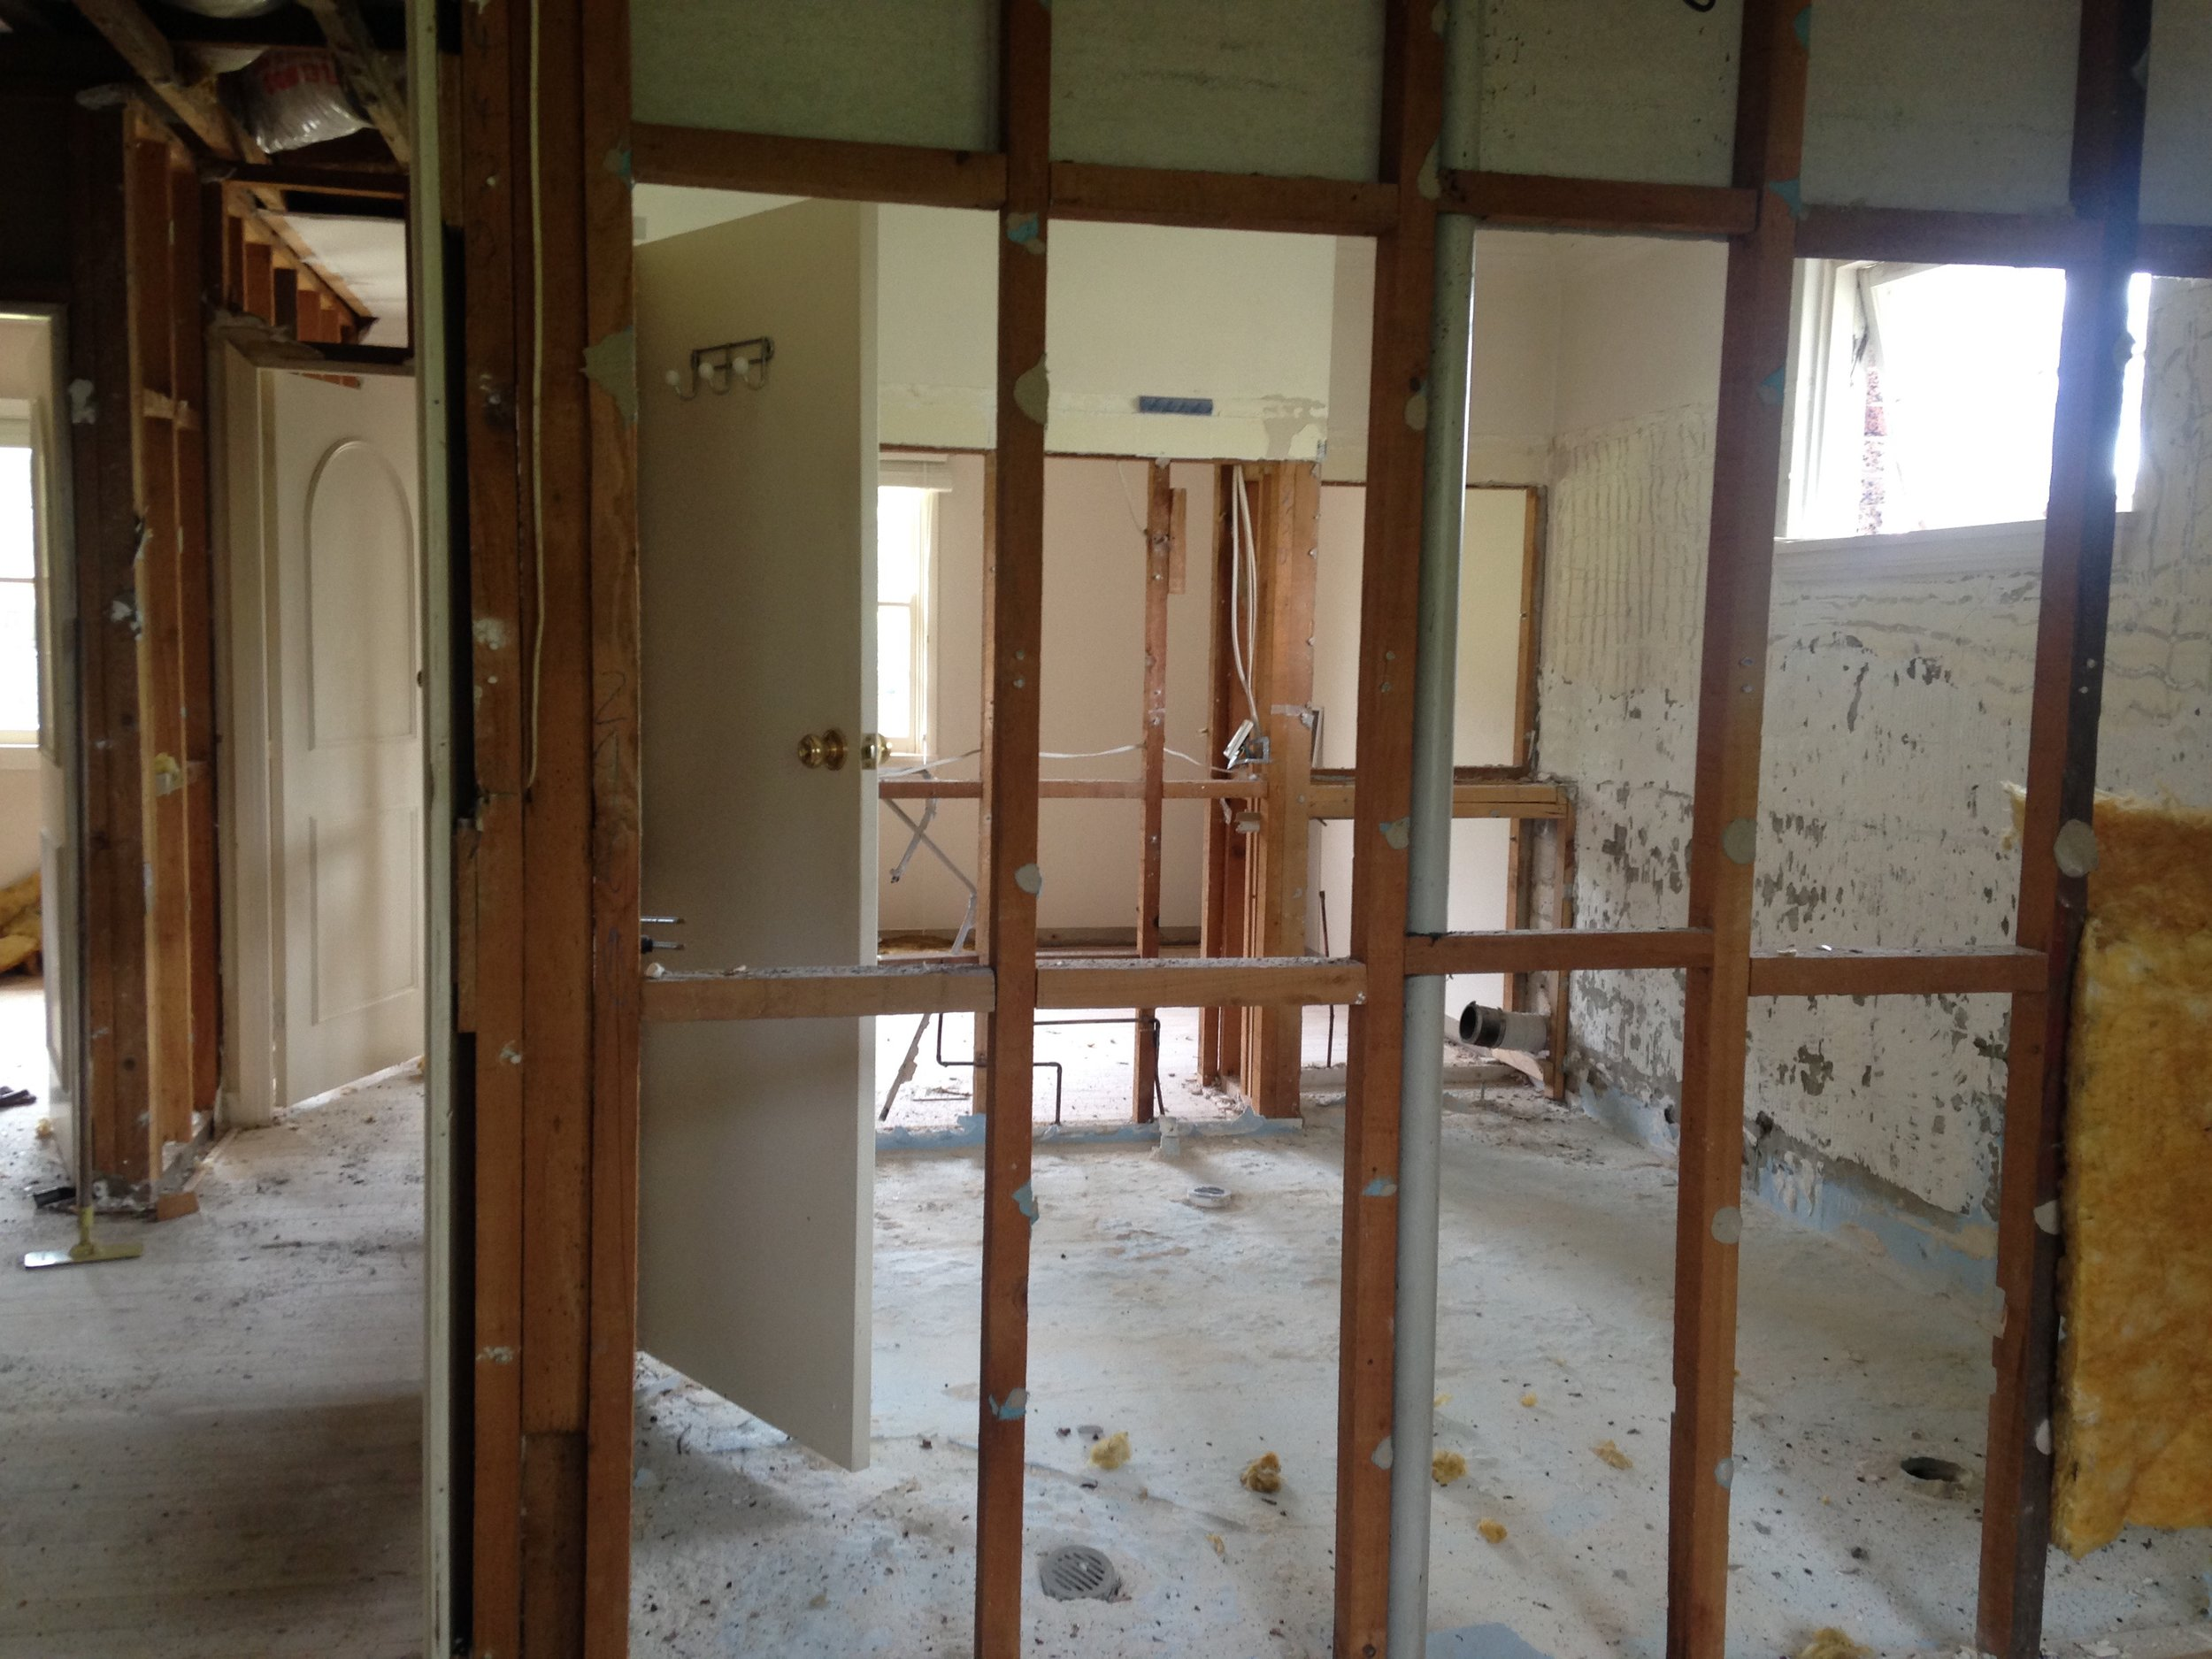 It's a timber stud forest on the first floor as we are moving most of the walls, including the removal of a smaller bedroom to increase the size of the master bedroom and reconfigure the remaining bedrooms and bathroom.